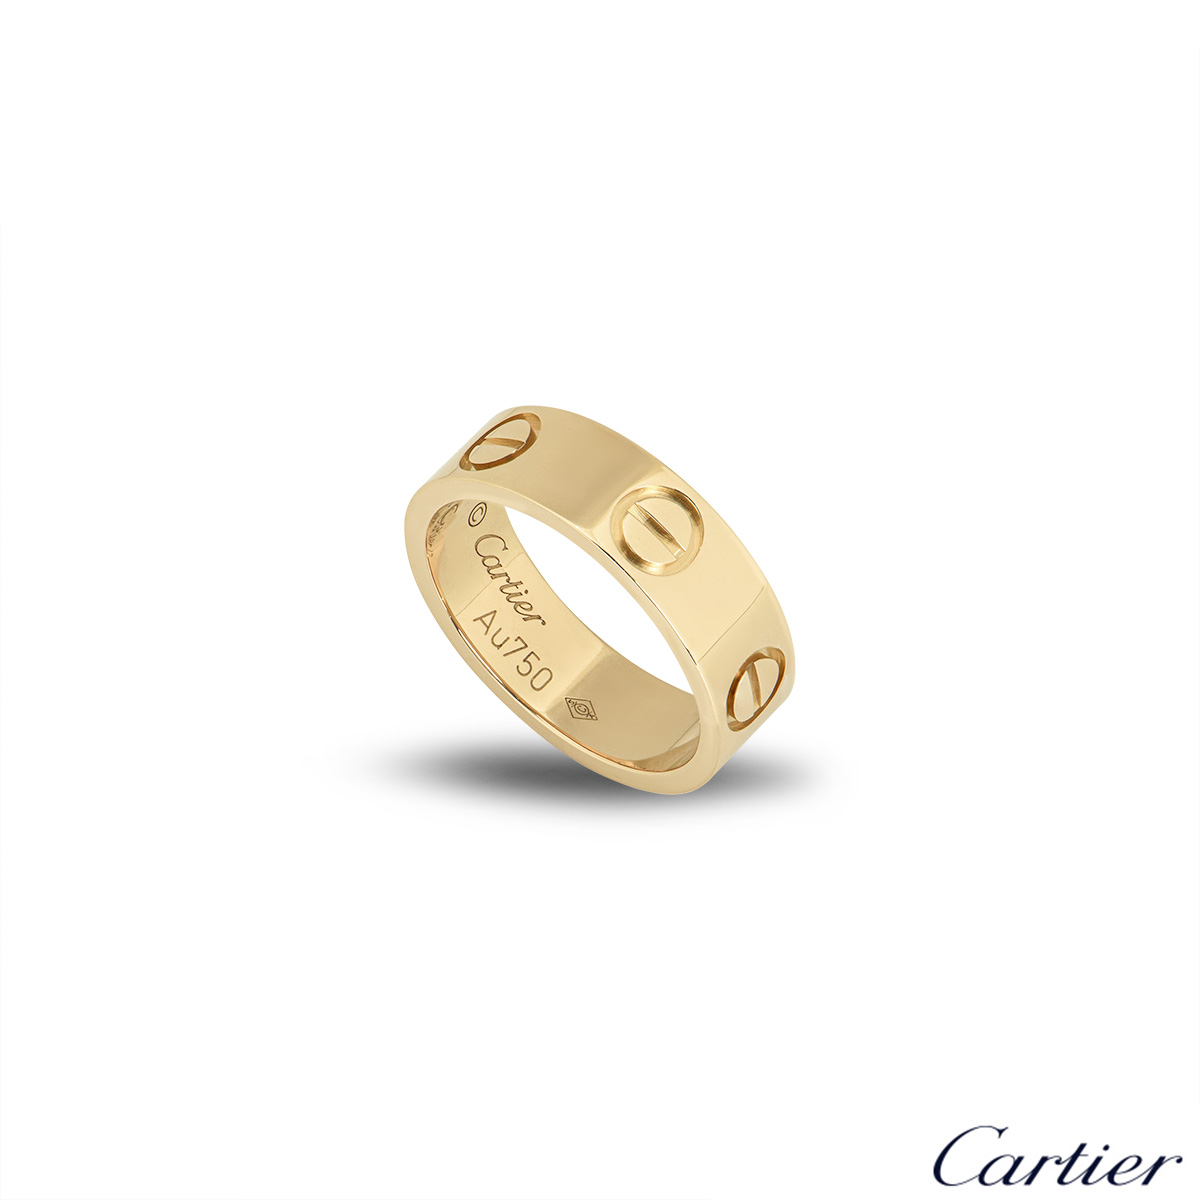 Cartier Yellow Gold Love Ring Size 59 B4084600